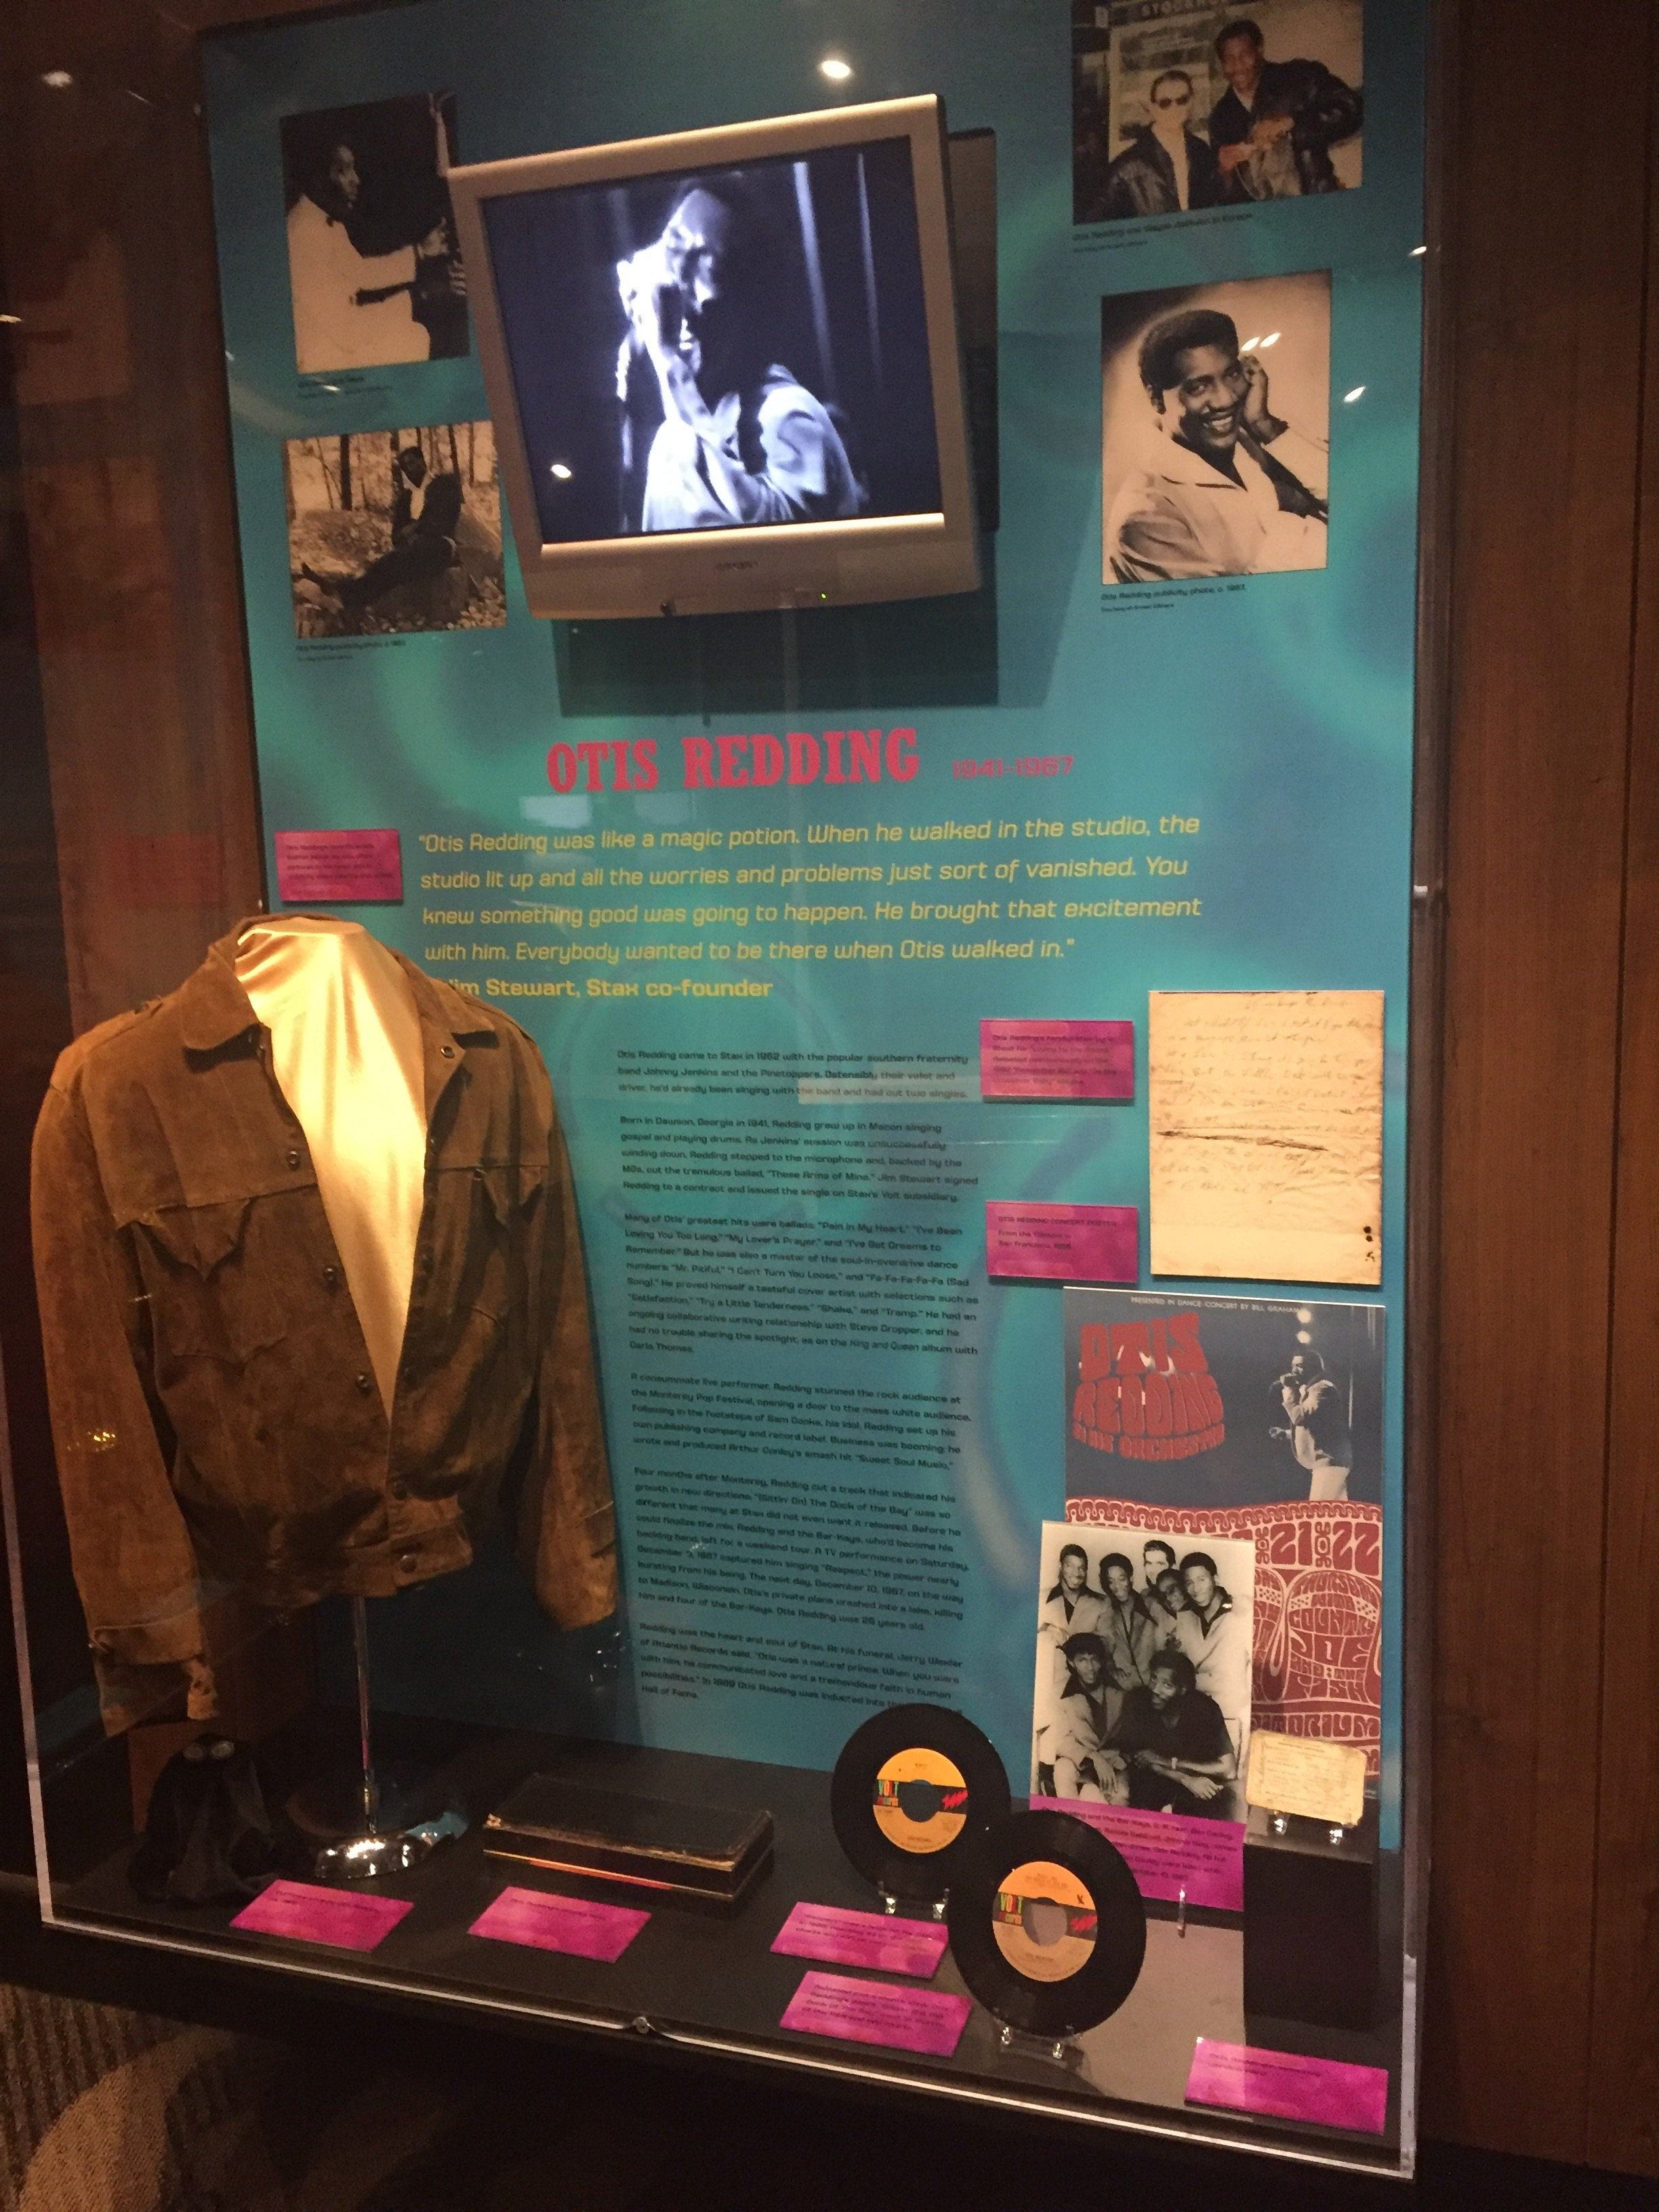 The Otis Redding exhibit at the Stax Museum